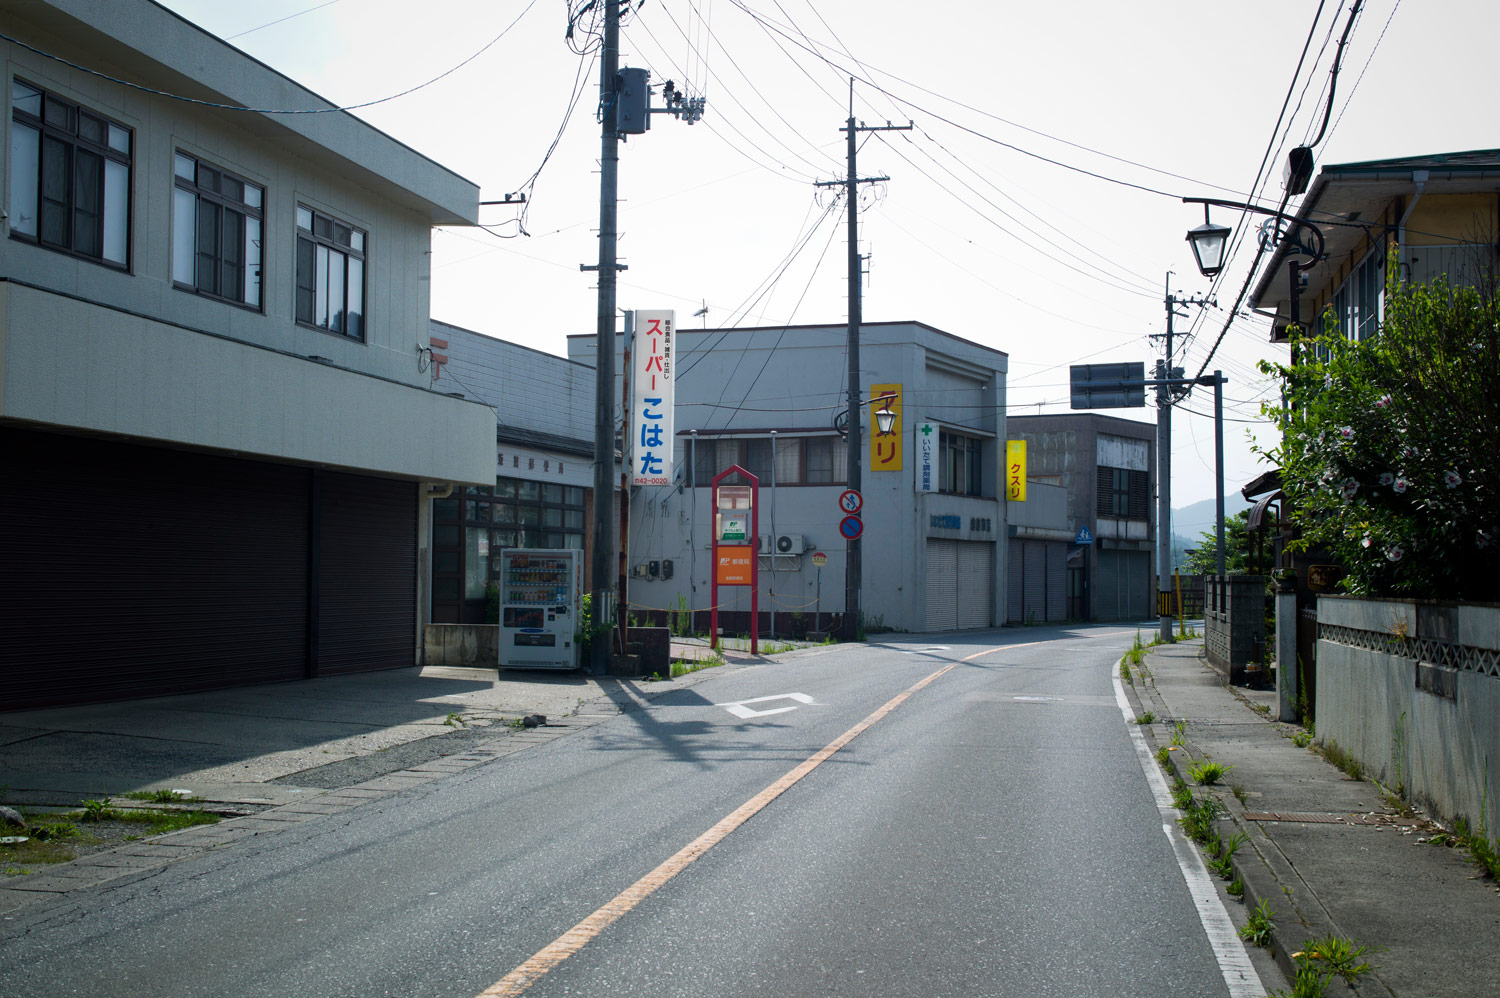 A deserted city within the exclusion zone, August 13, 2011.